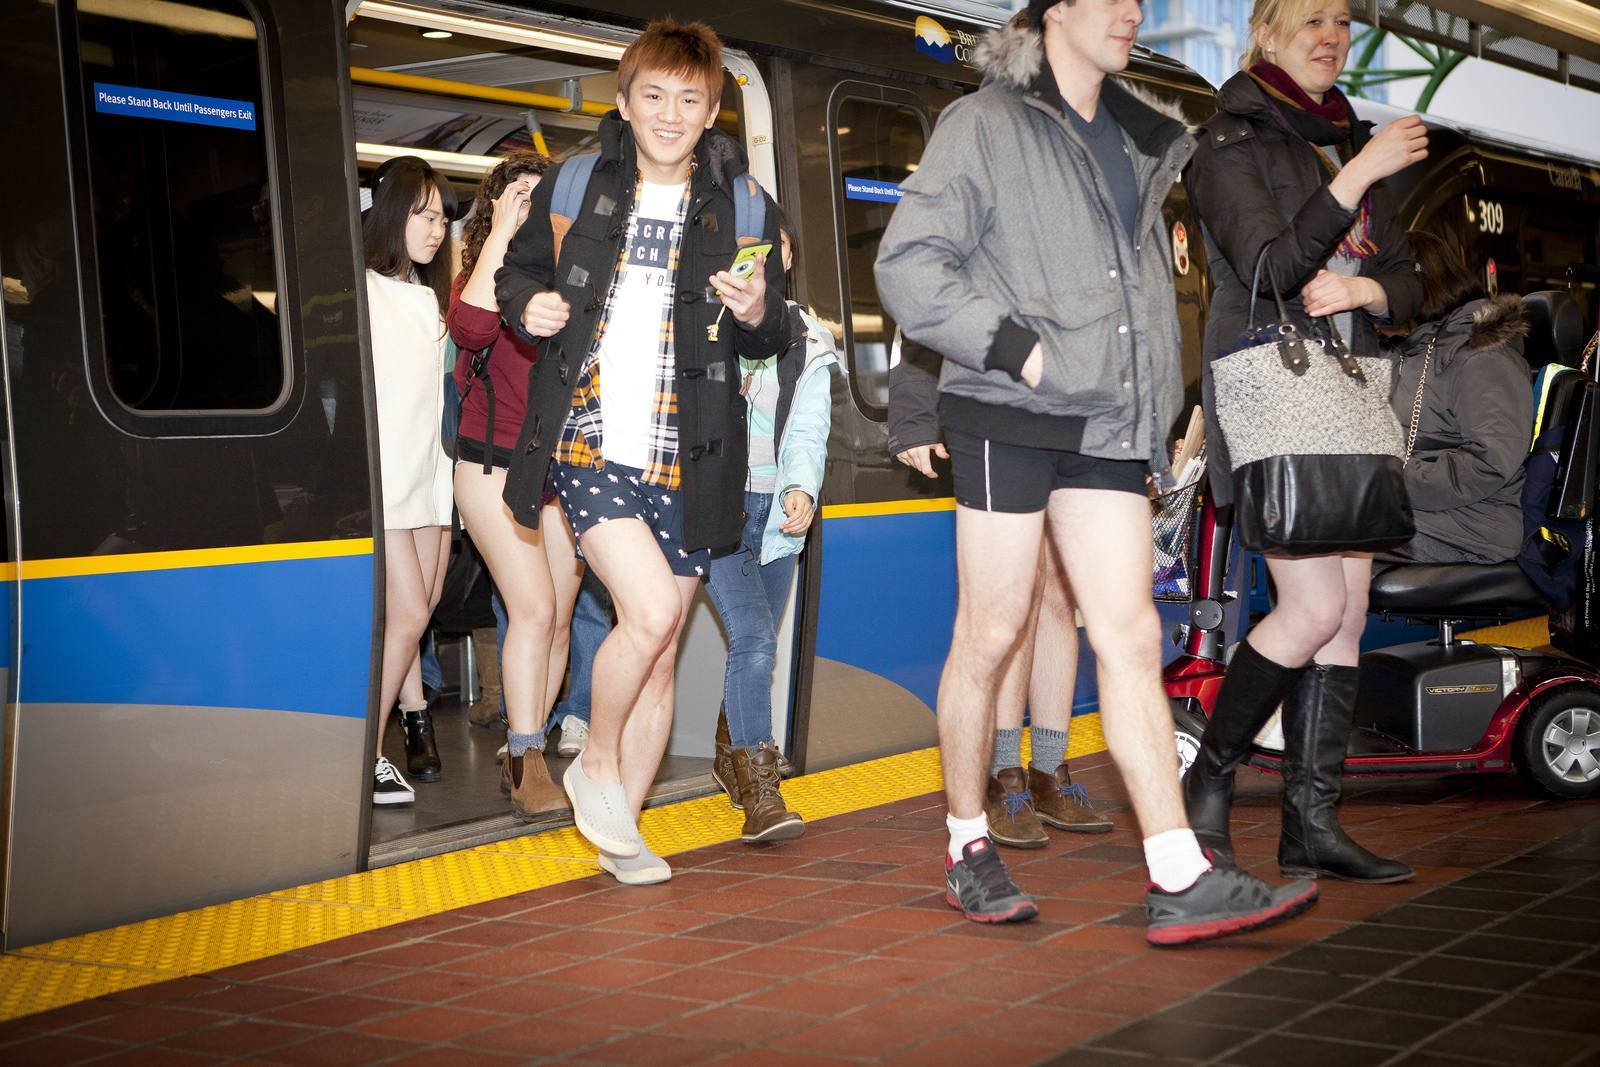 no pants3 No Pants Skytrain Ride 2015 in Vancouver